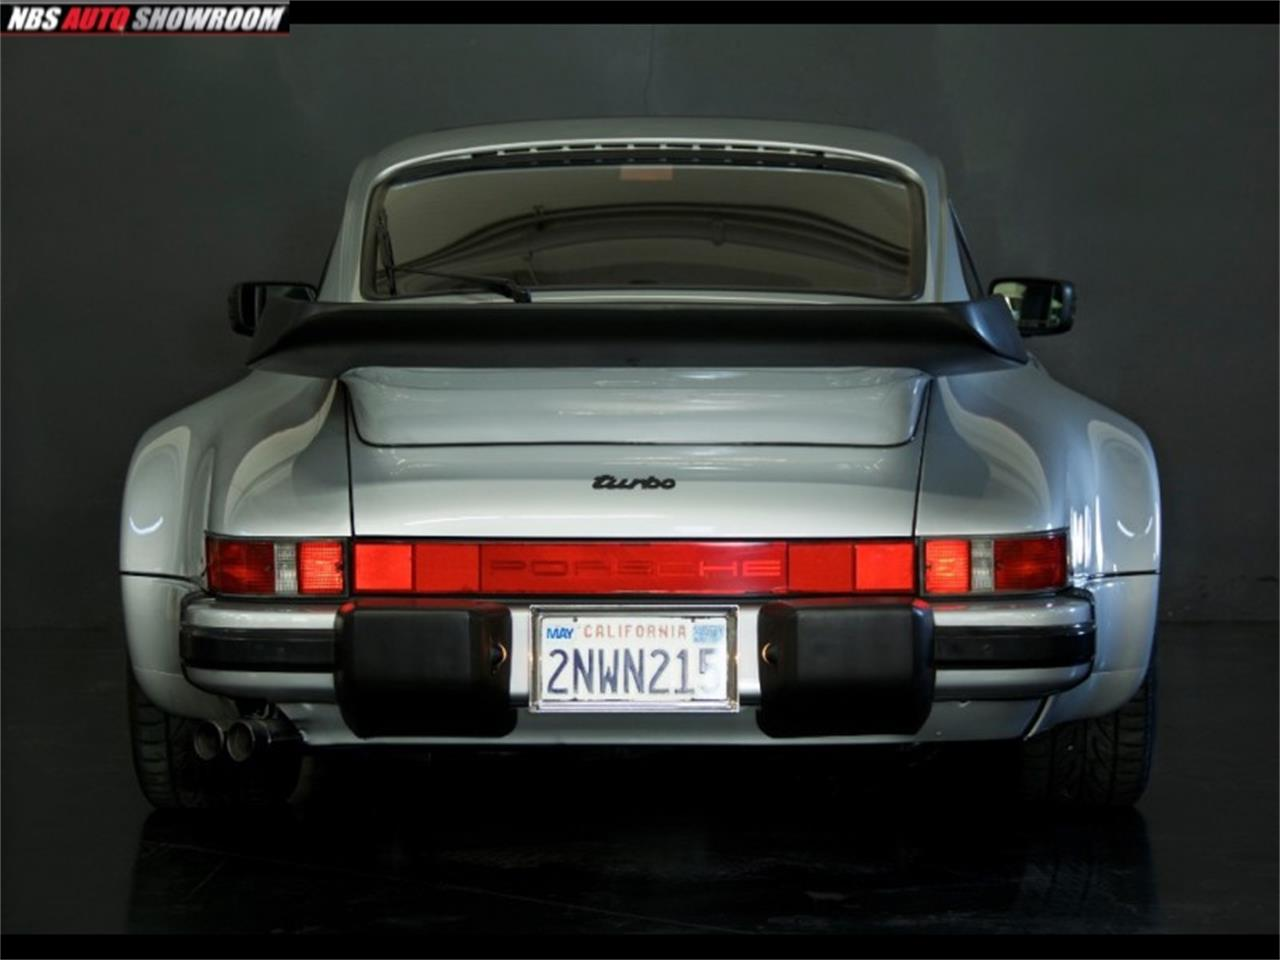 Large Picture of 1989 Porsche 911 - $160,000.00 Offered by NBS Auto Showroom - Q9VO